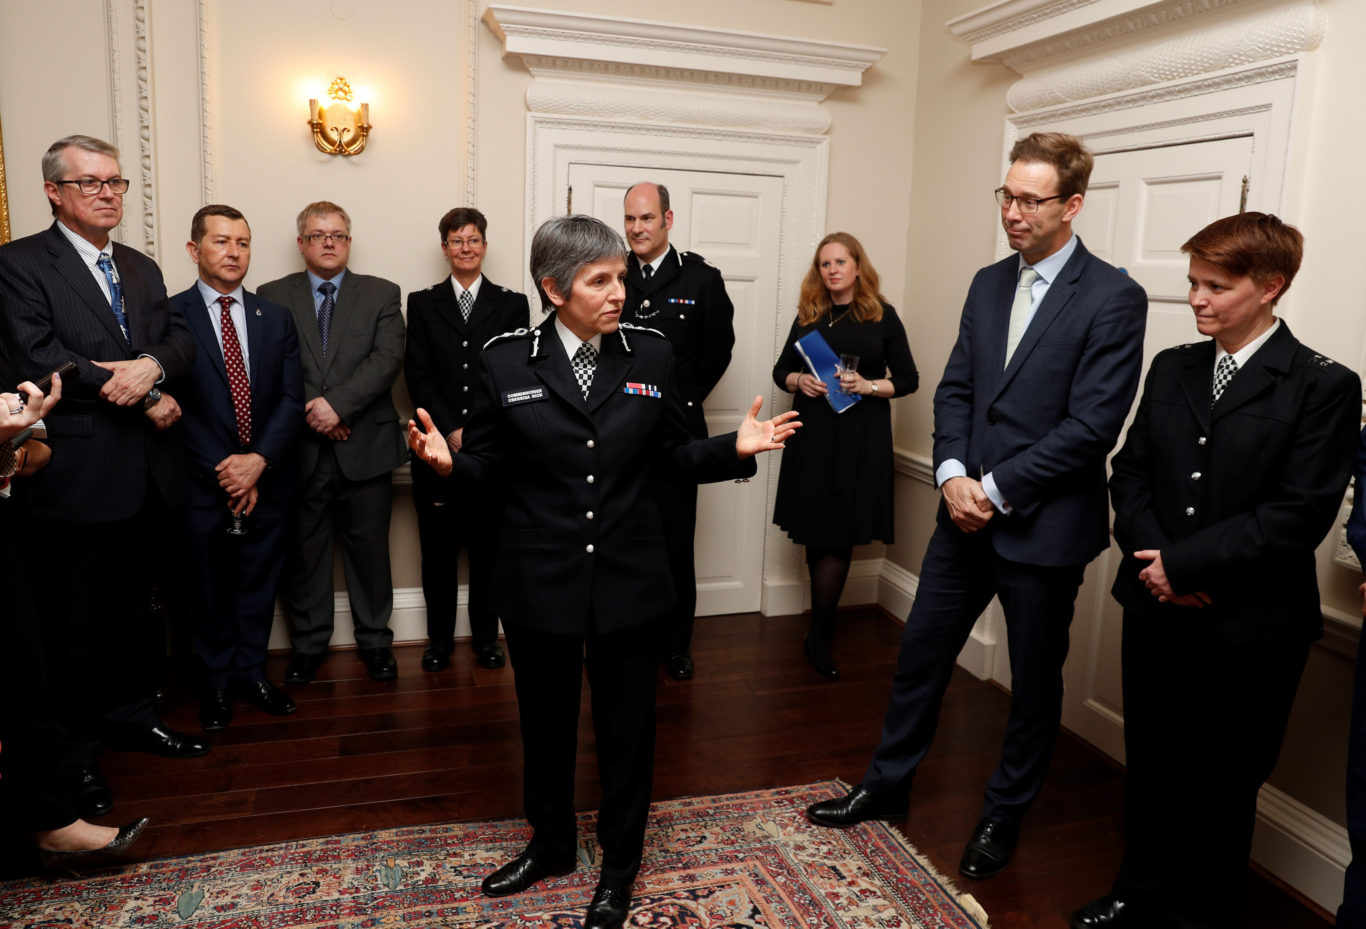 Metropolitan Police Commissioner Cressida Dick makes a speech during the reception (Adrian Dennis/PA)